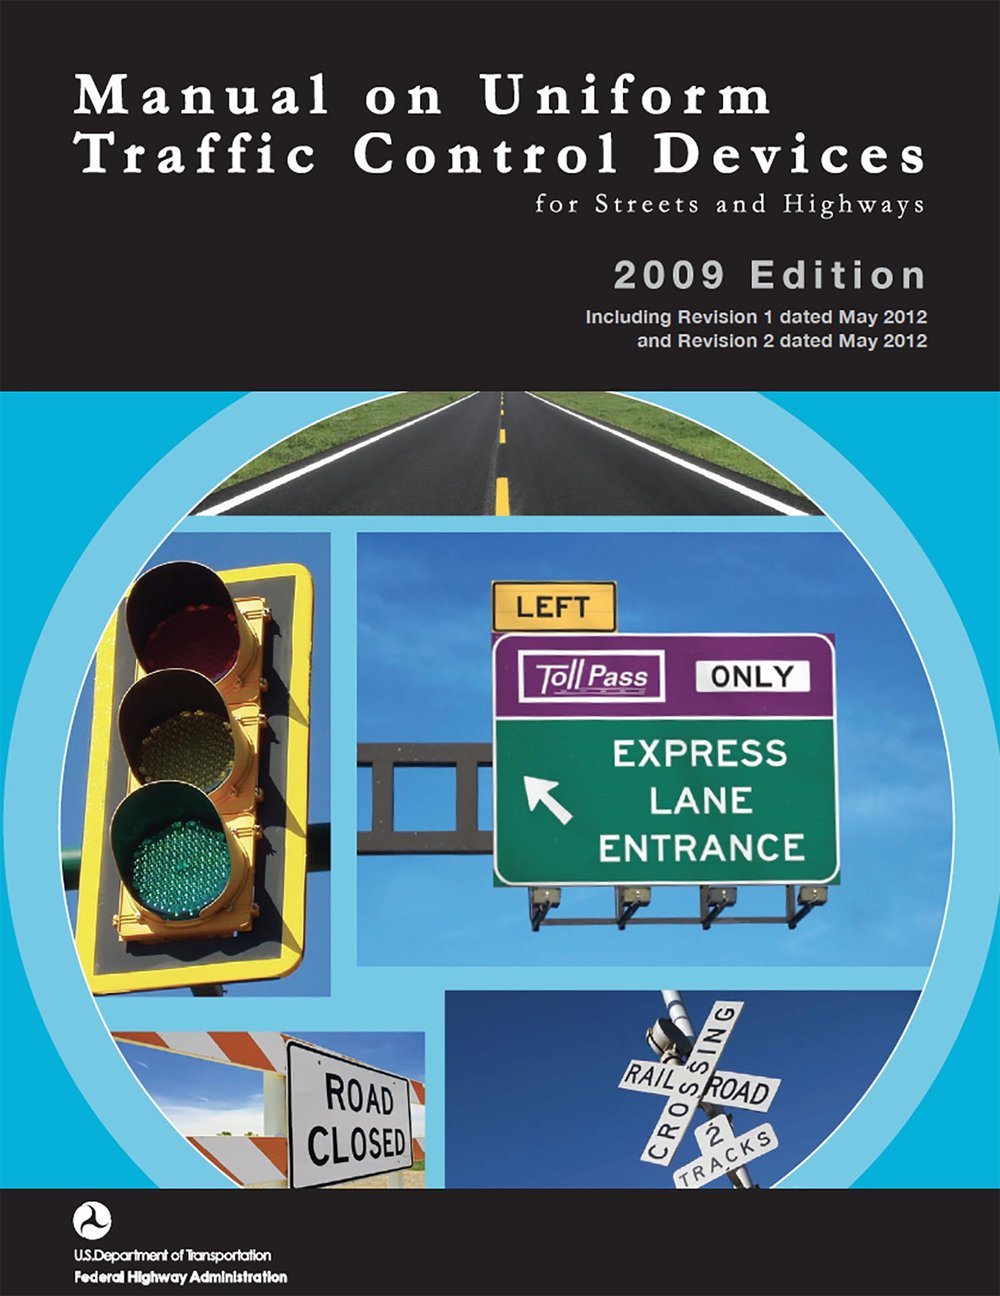 the United States' Manual on Uniform Traffic Control Devices, 2009 edition